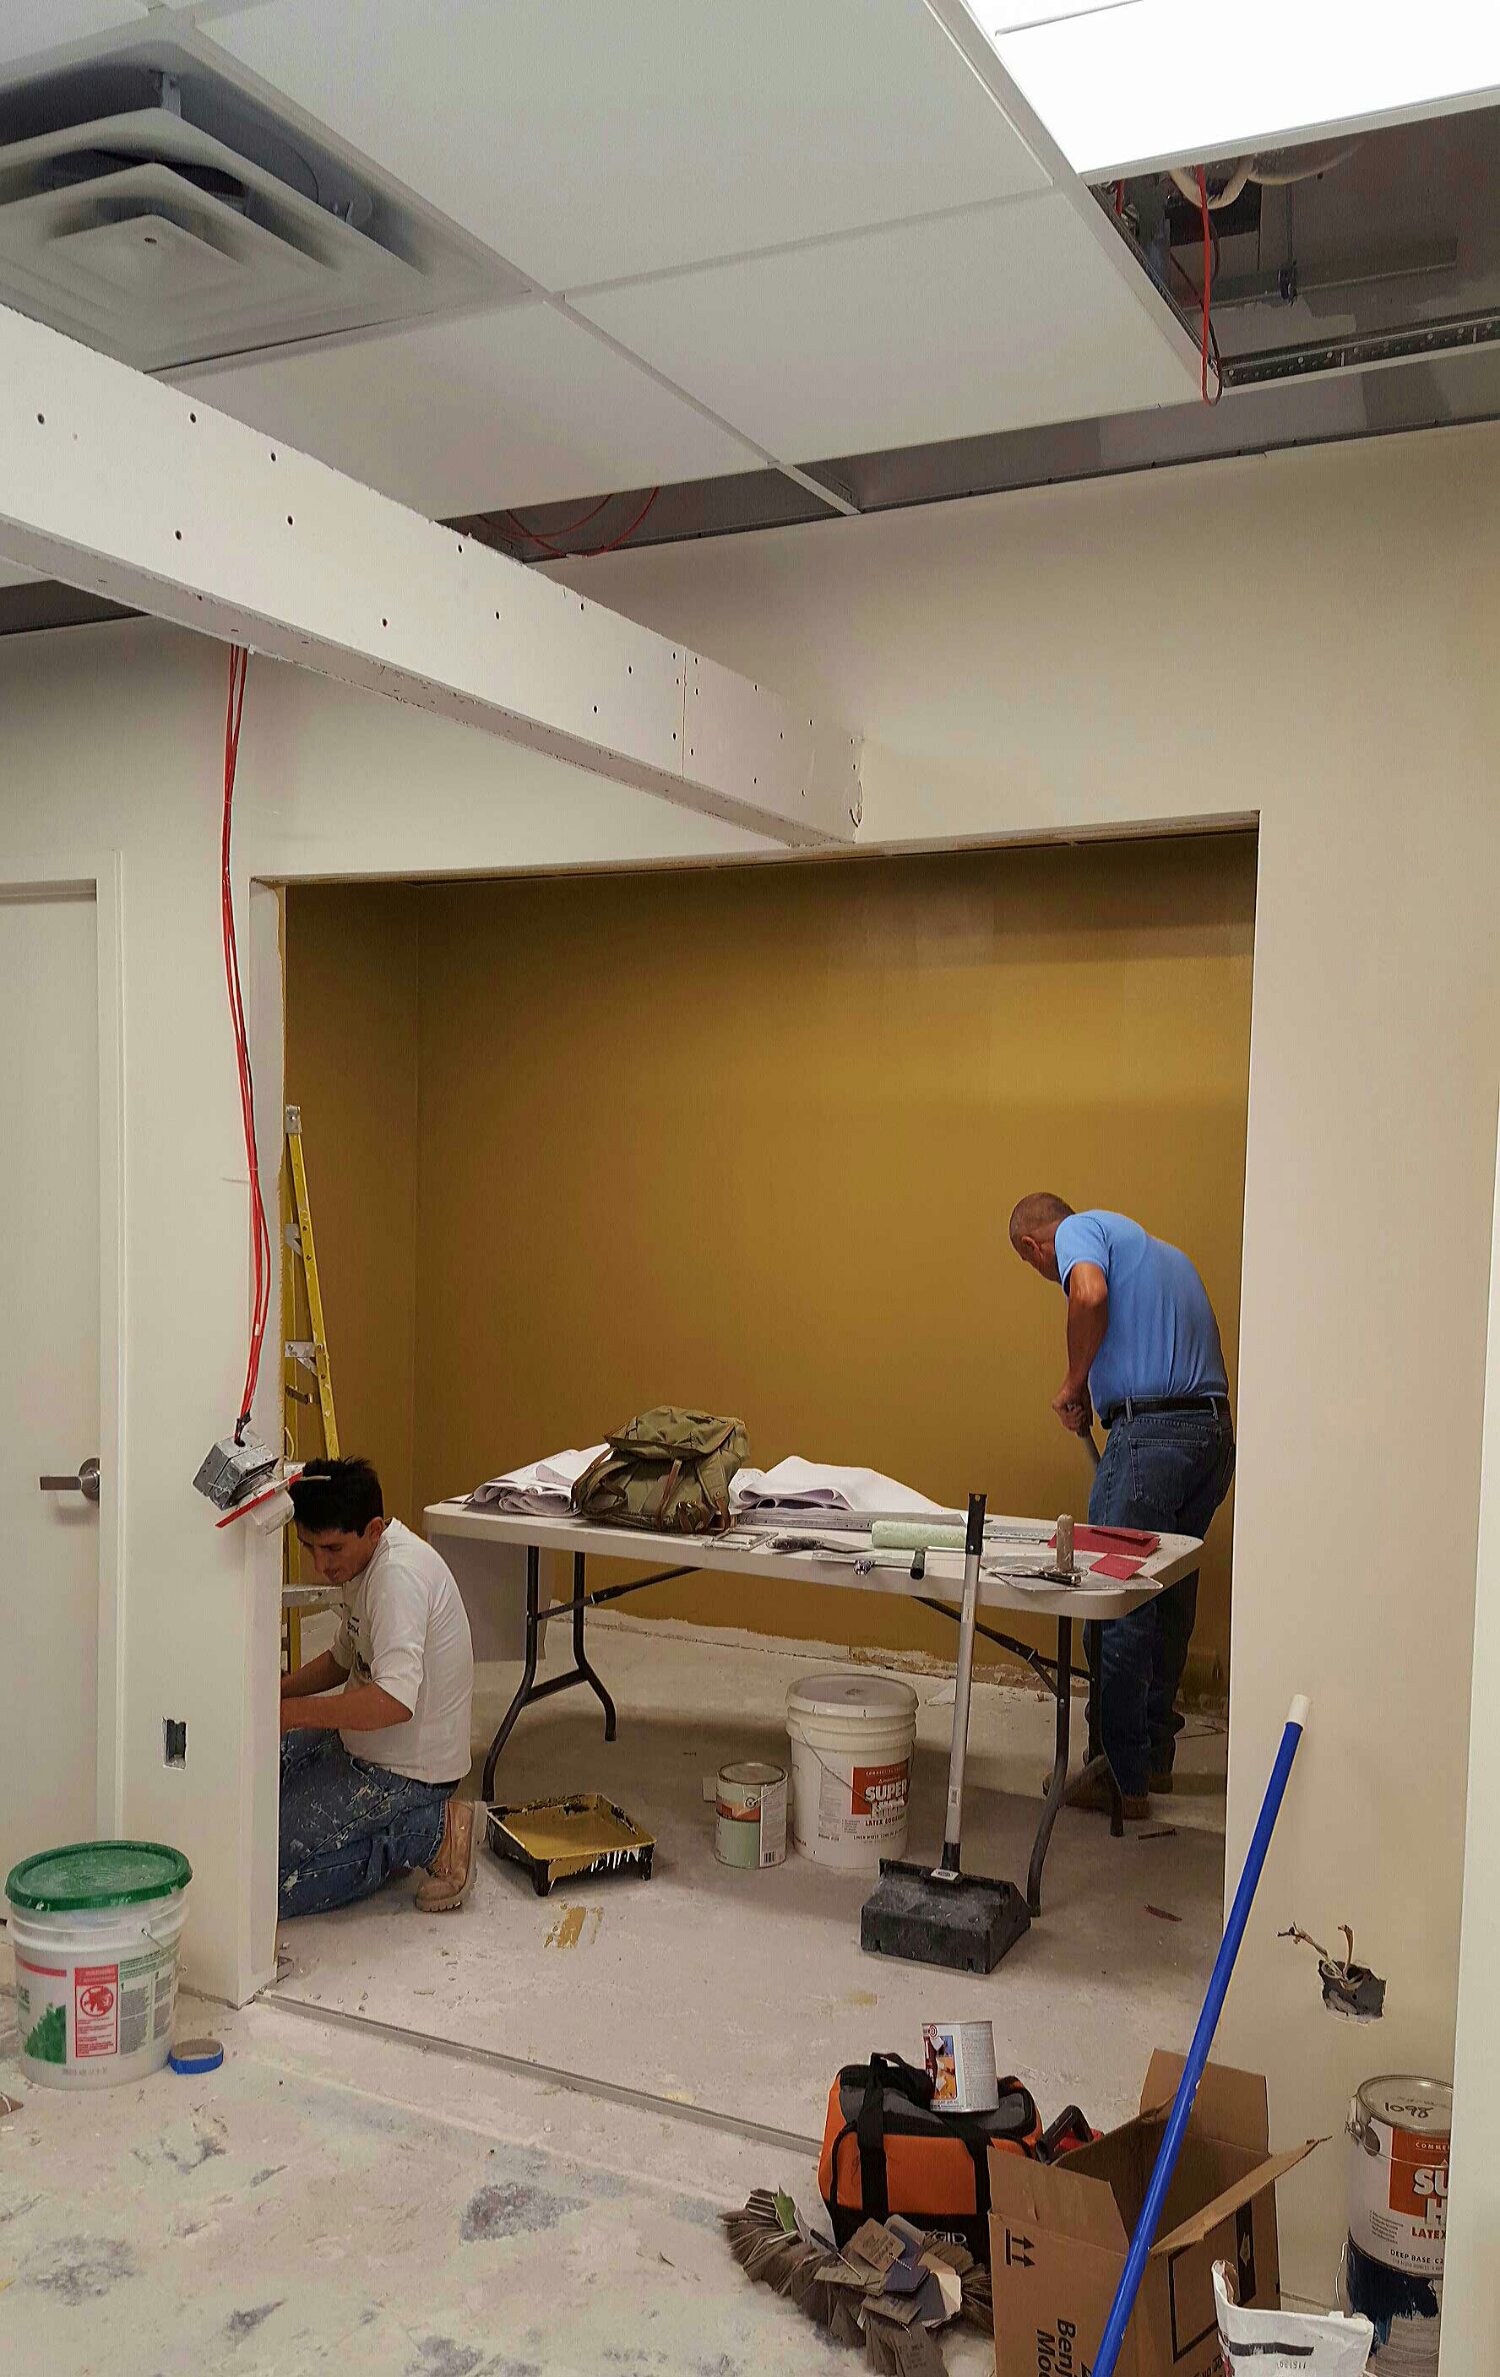 The conference room has its first coat of Benjamin Moore's Toasted Almond.